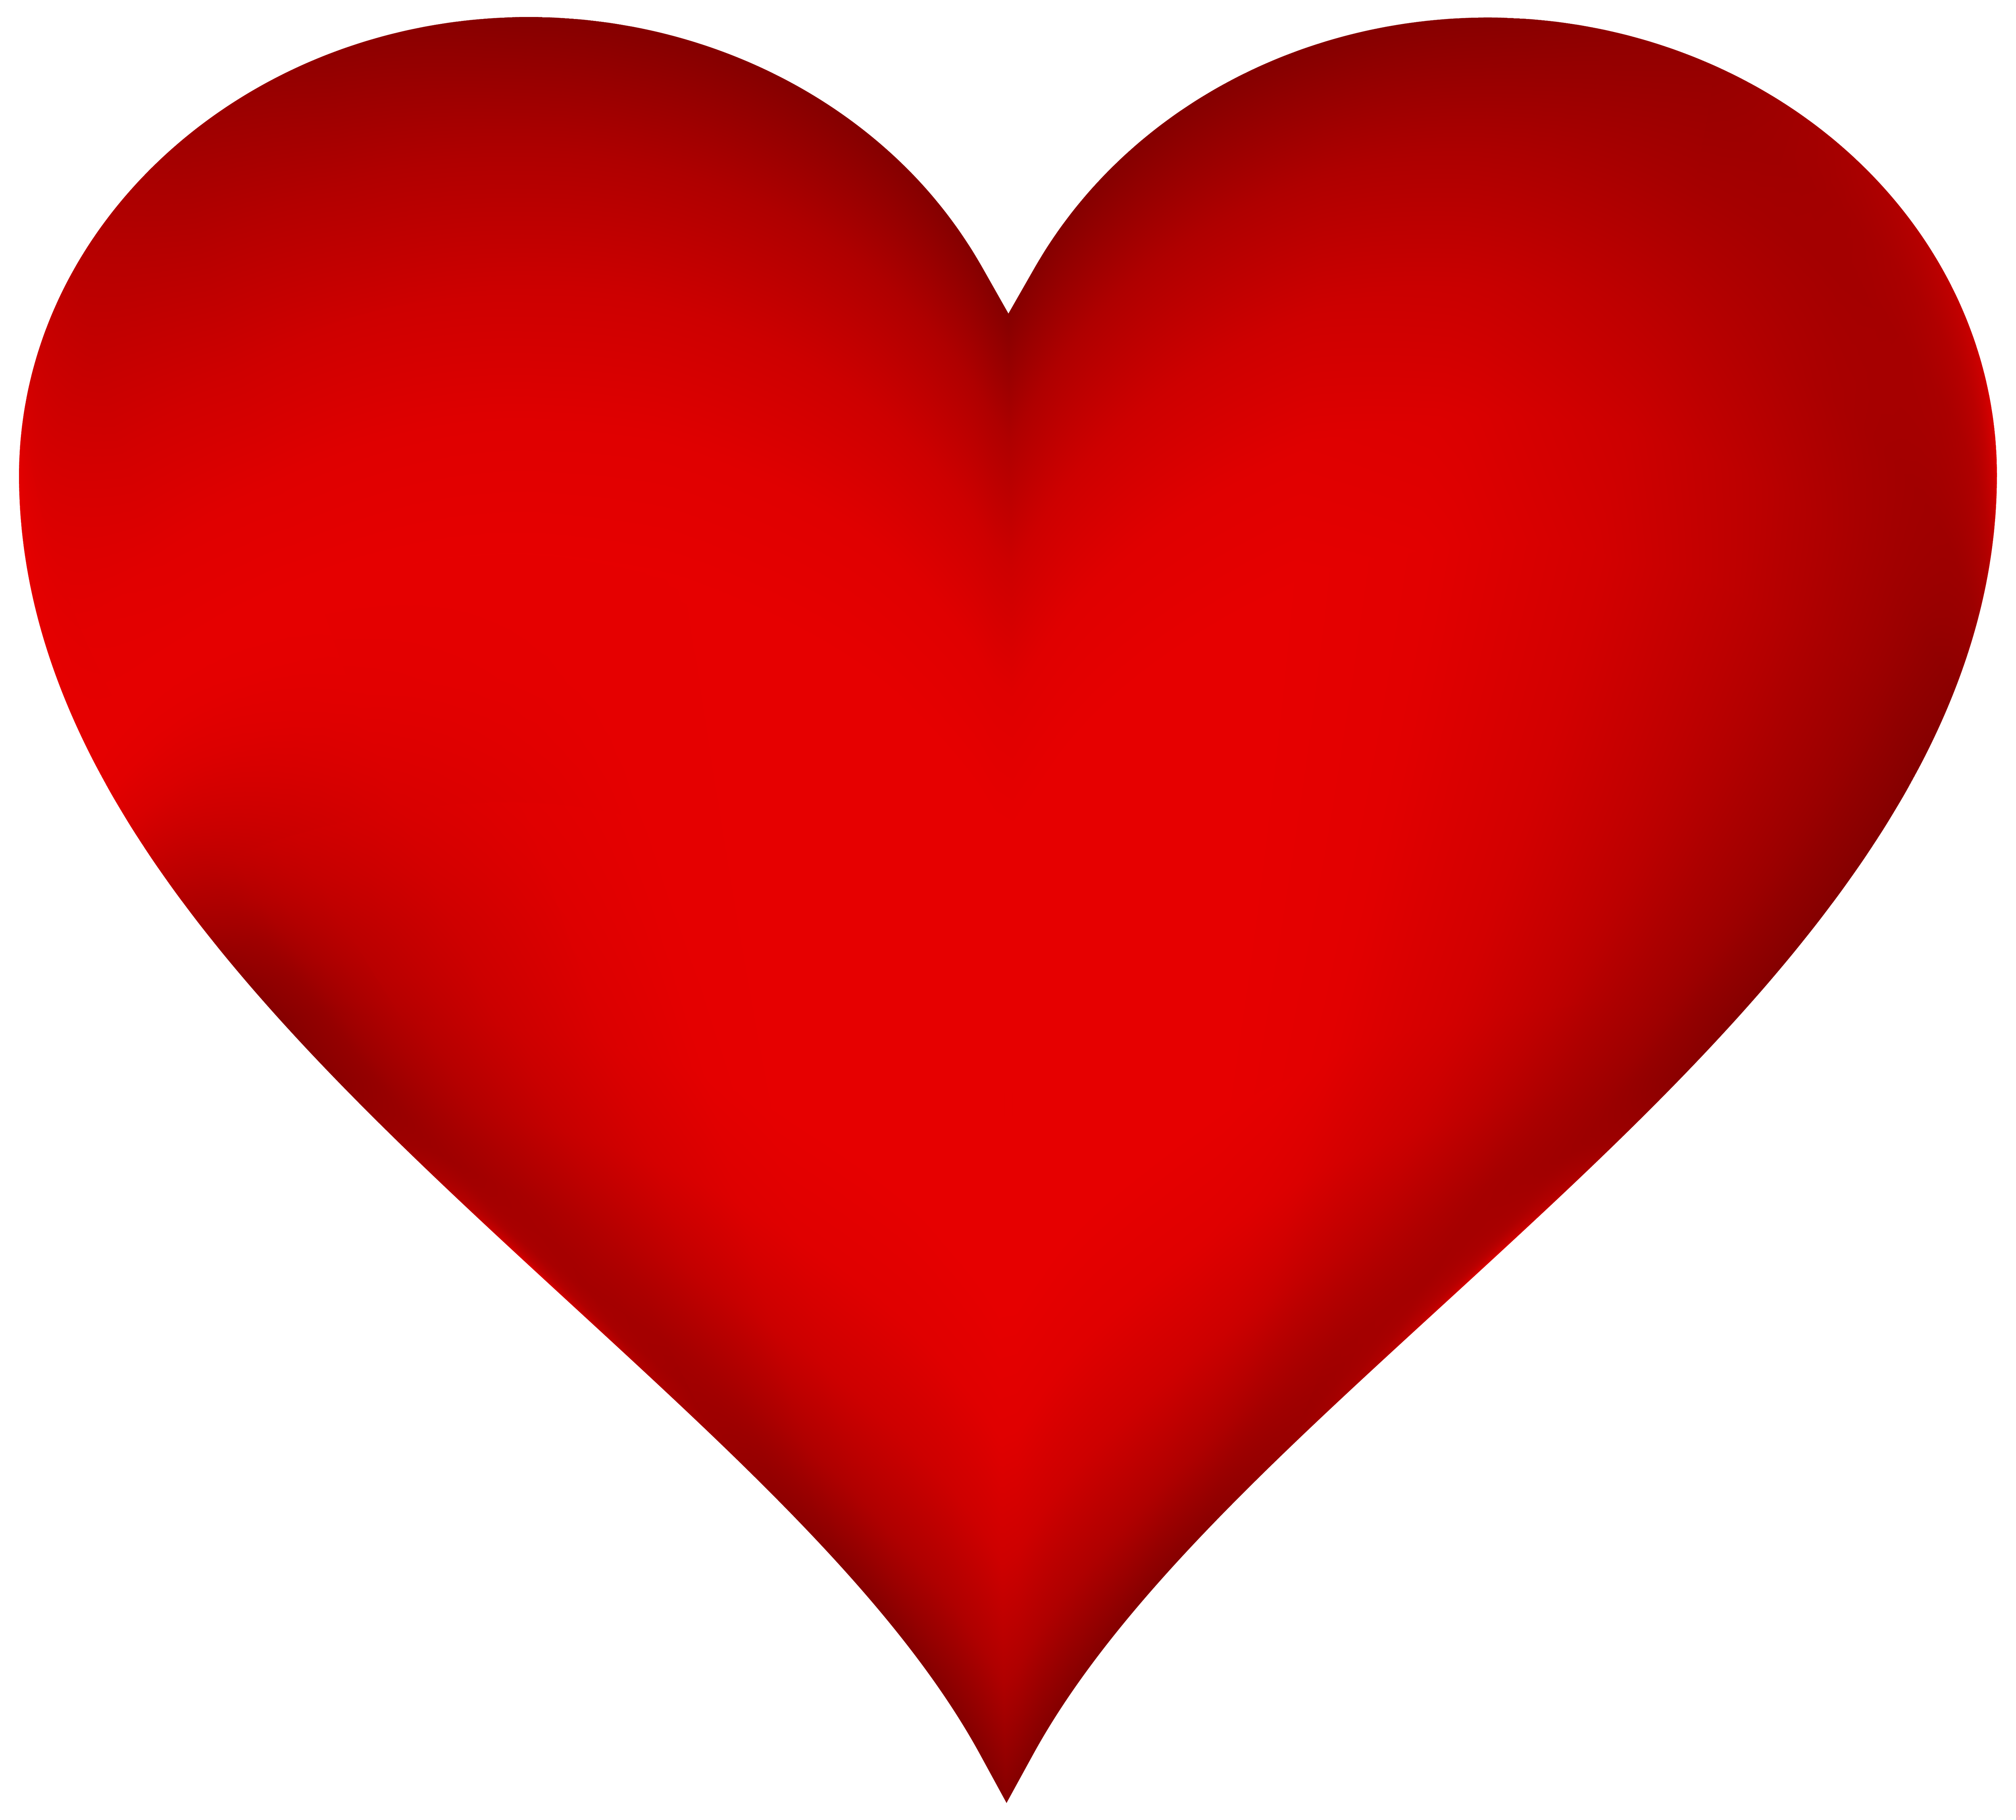 Hearts clipart vegetable. Heart png best web